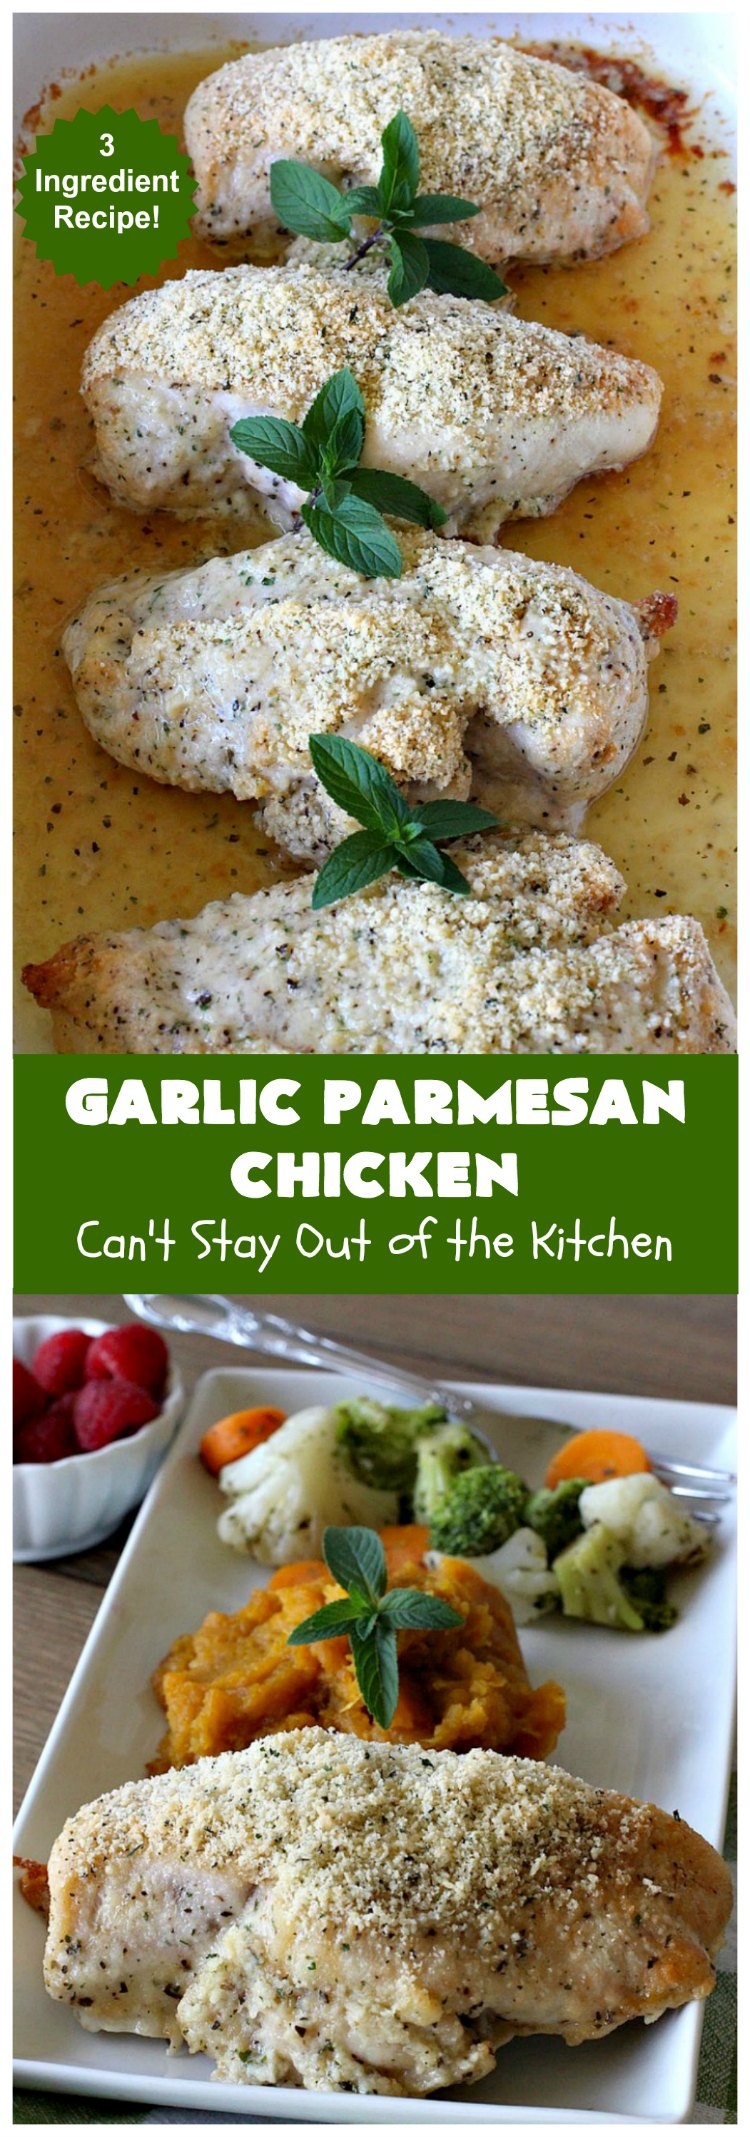 Garlic Parmesan Chicken | Can't Stay Out of the Kitchen | fantastic 3-ingredient #recipe that's so quick & easy to prepare. Terrific for week night or company dinners. #chicken #ParmesanCheese #GarlicParmesanChicken